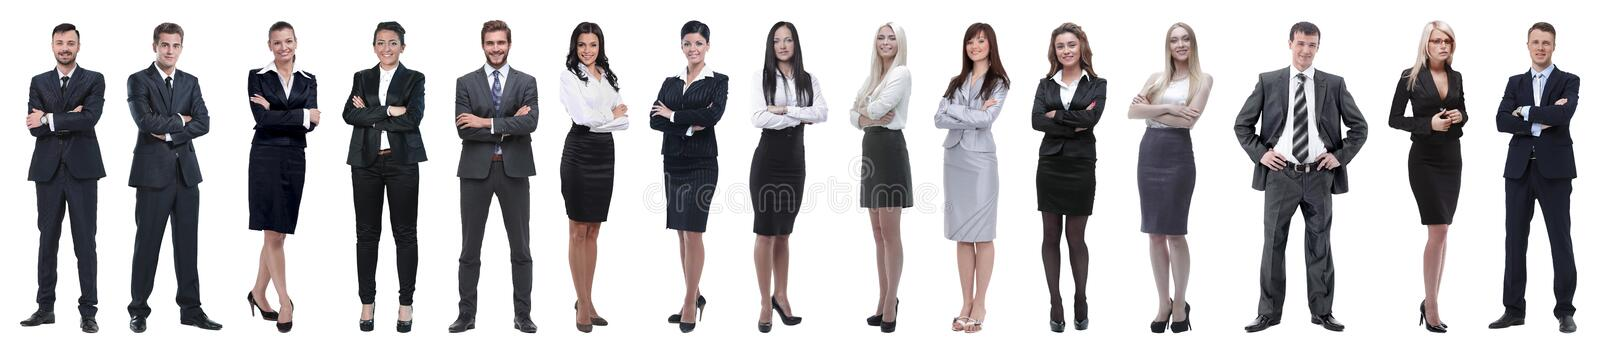 Young attractive business people - the elite business team royalty free stock photos